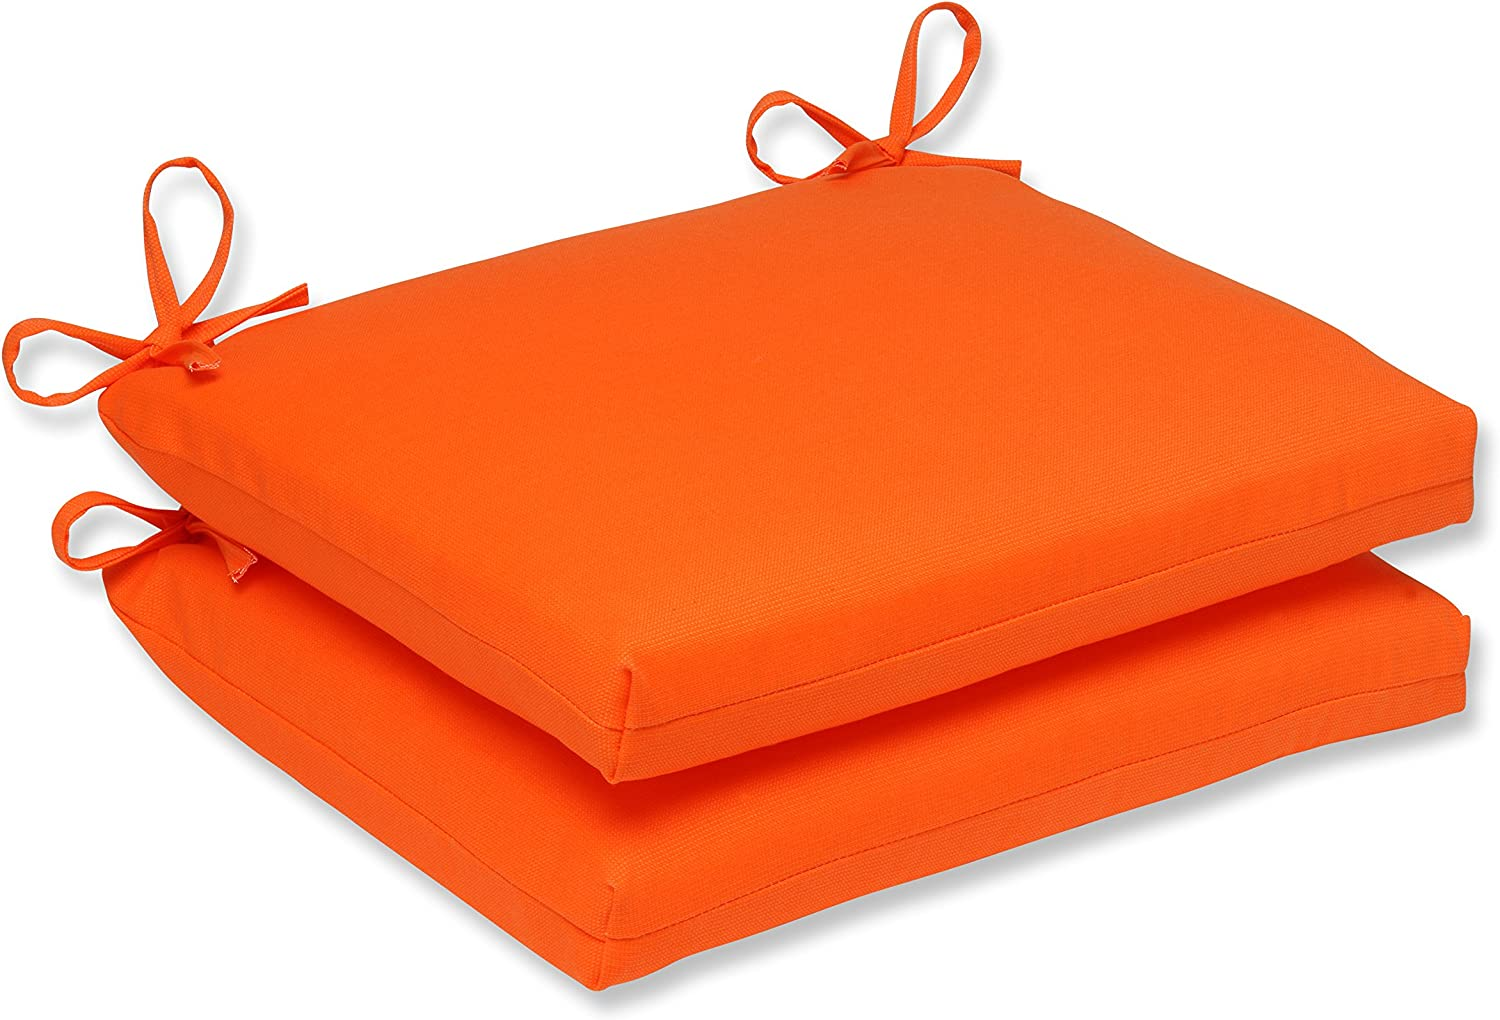 Pillow Perfect 496696 Outdoor/Indoor Sundeck Square Corner Seat Cushions, 18.5 in. L X 16 in. W X 3 in. D, Orange, 2 Pack